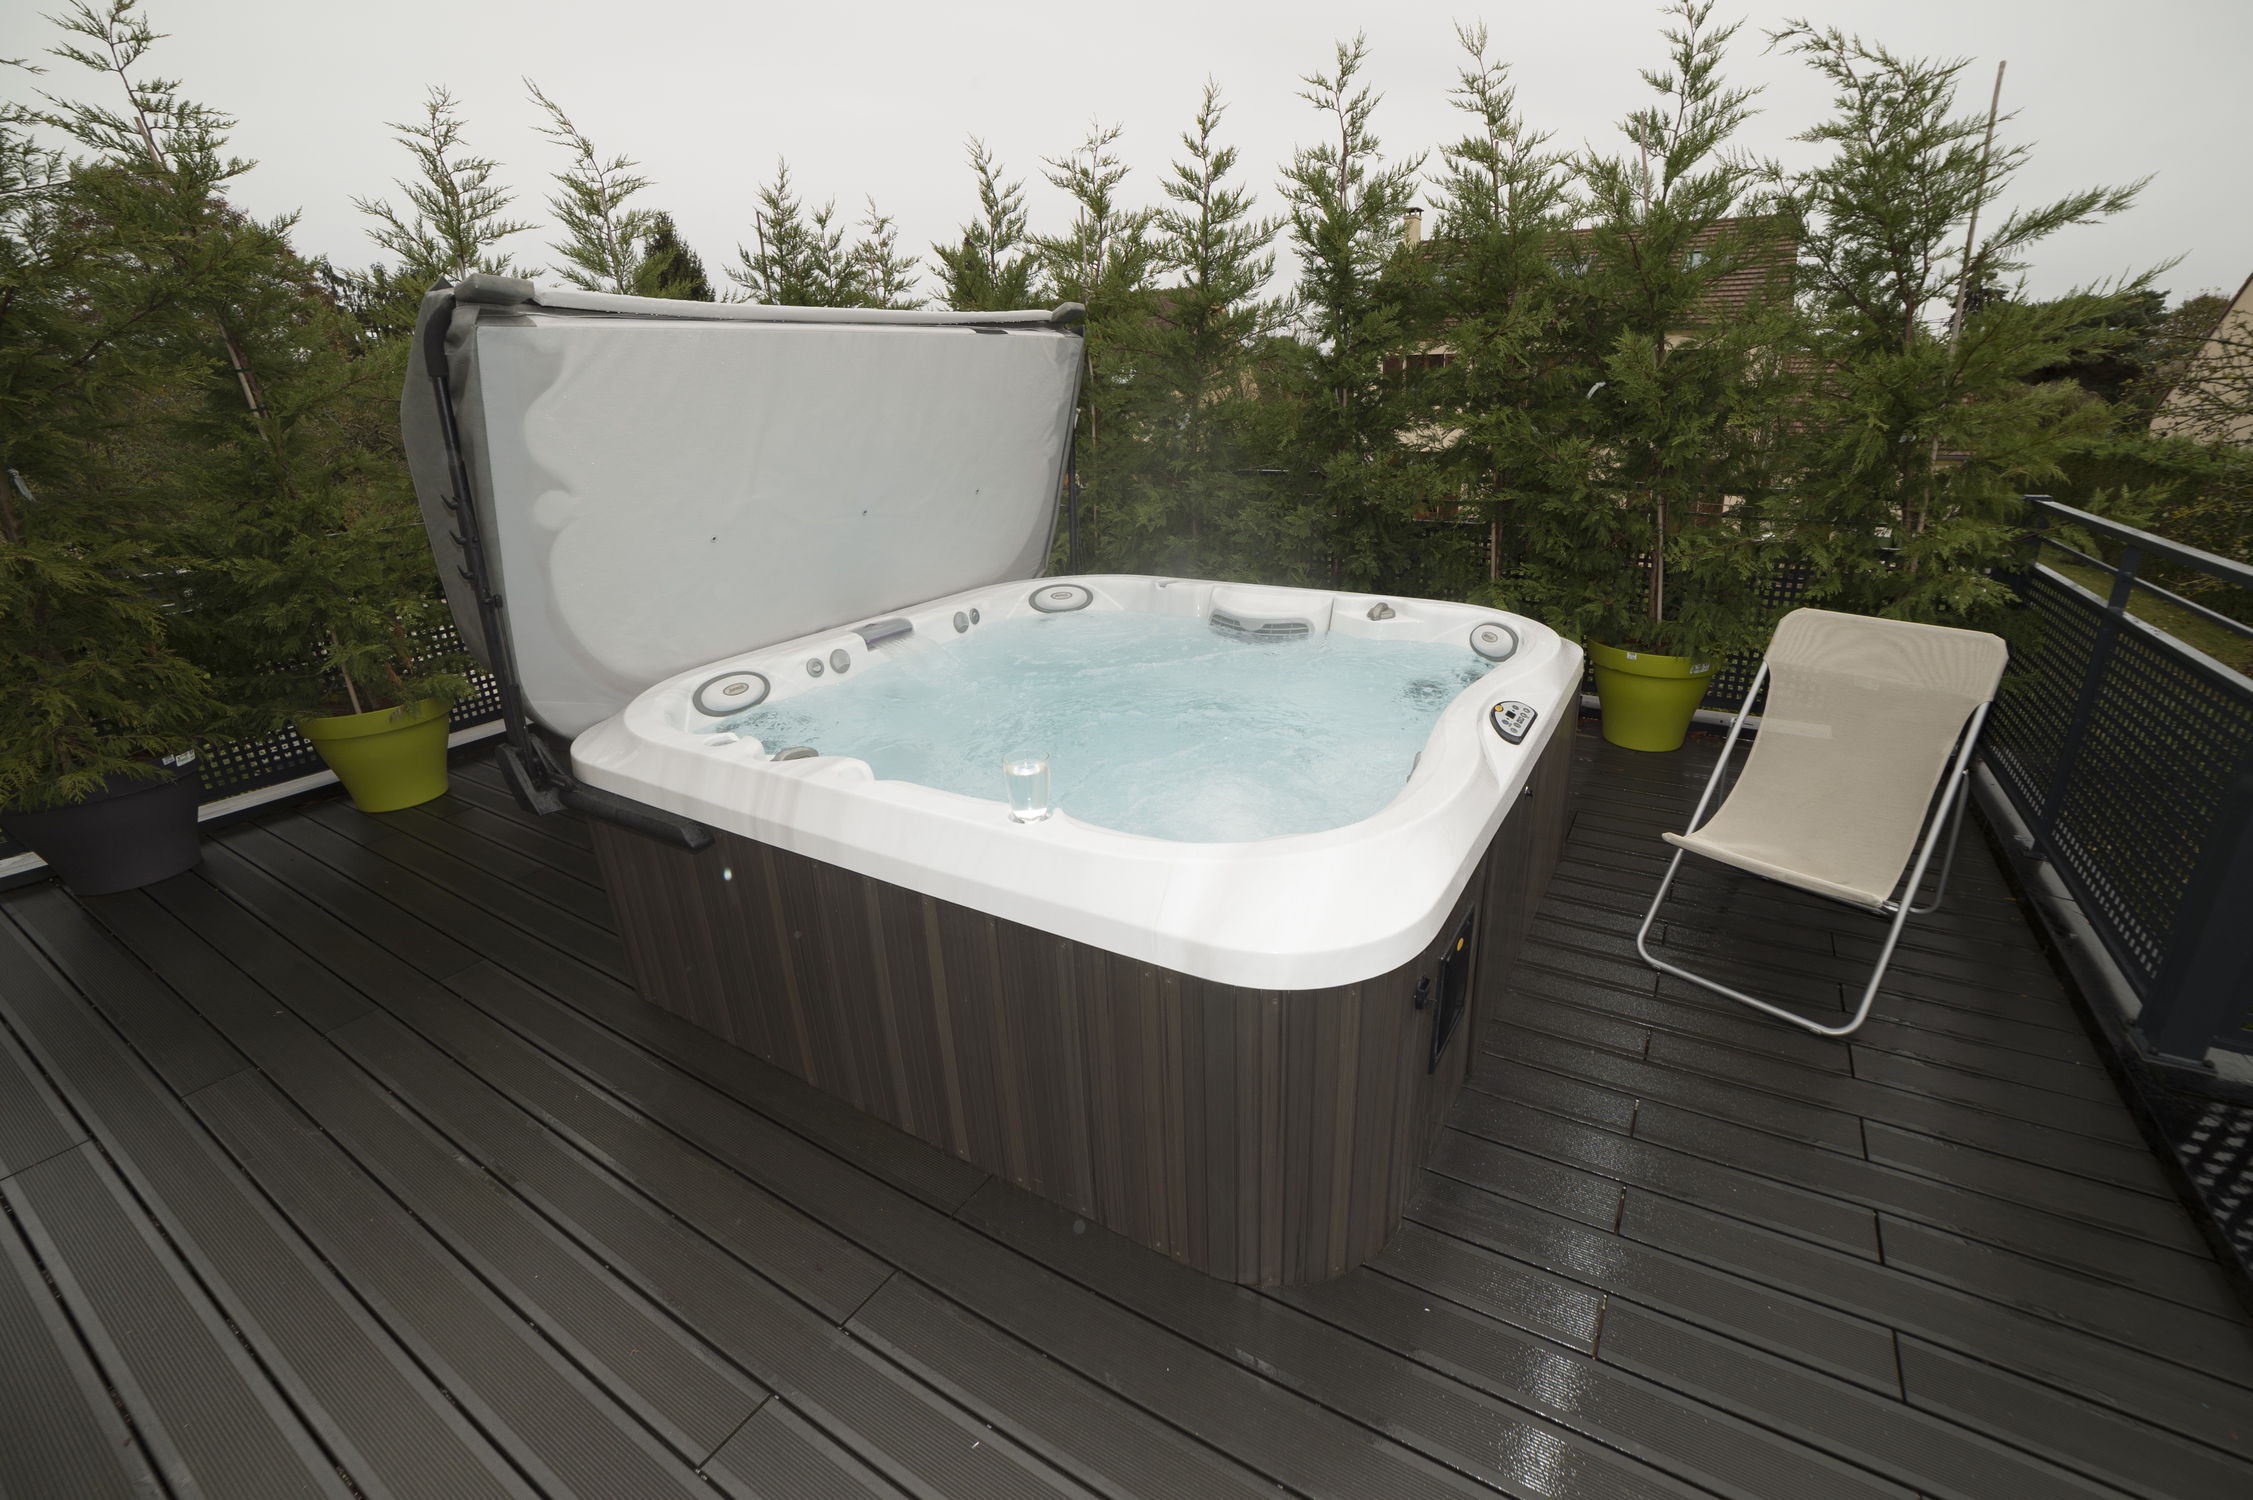 Above-ground hot tub / square / 6-person / outdoor - J-375 - Jacuzzi ...